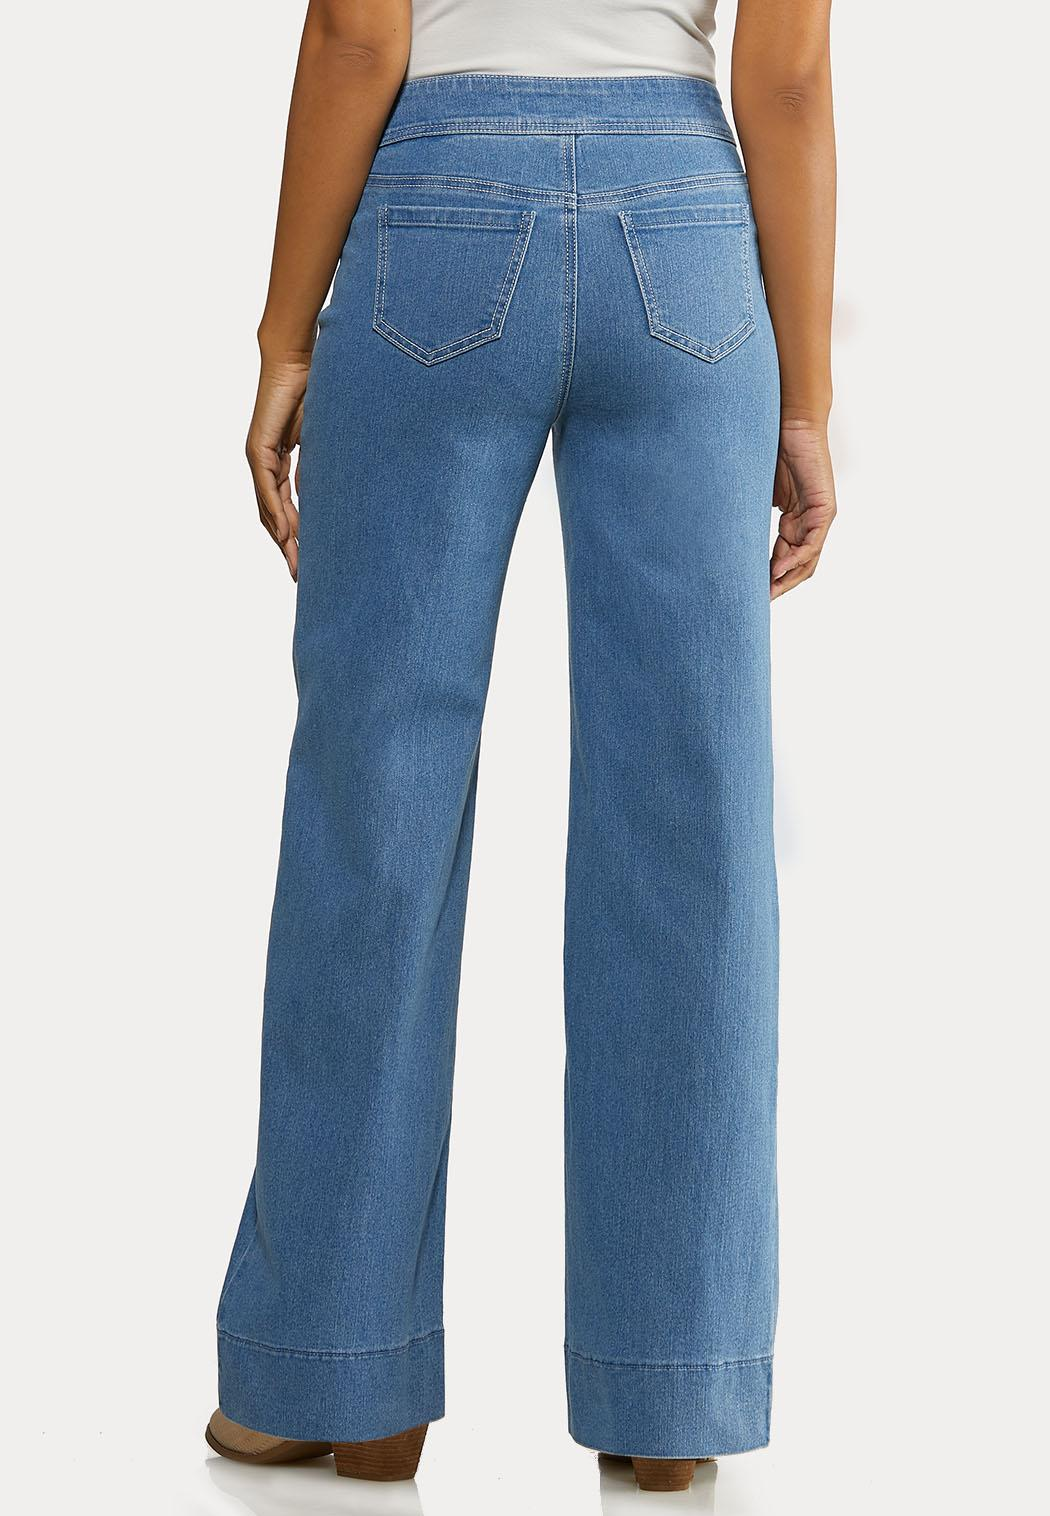 Stitched Trouser Jeans (Item #44125071)